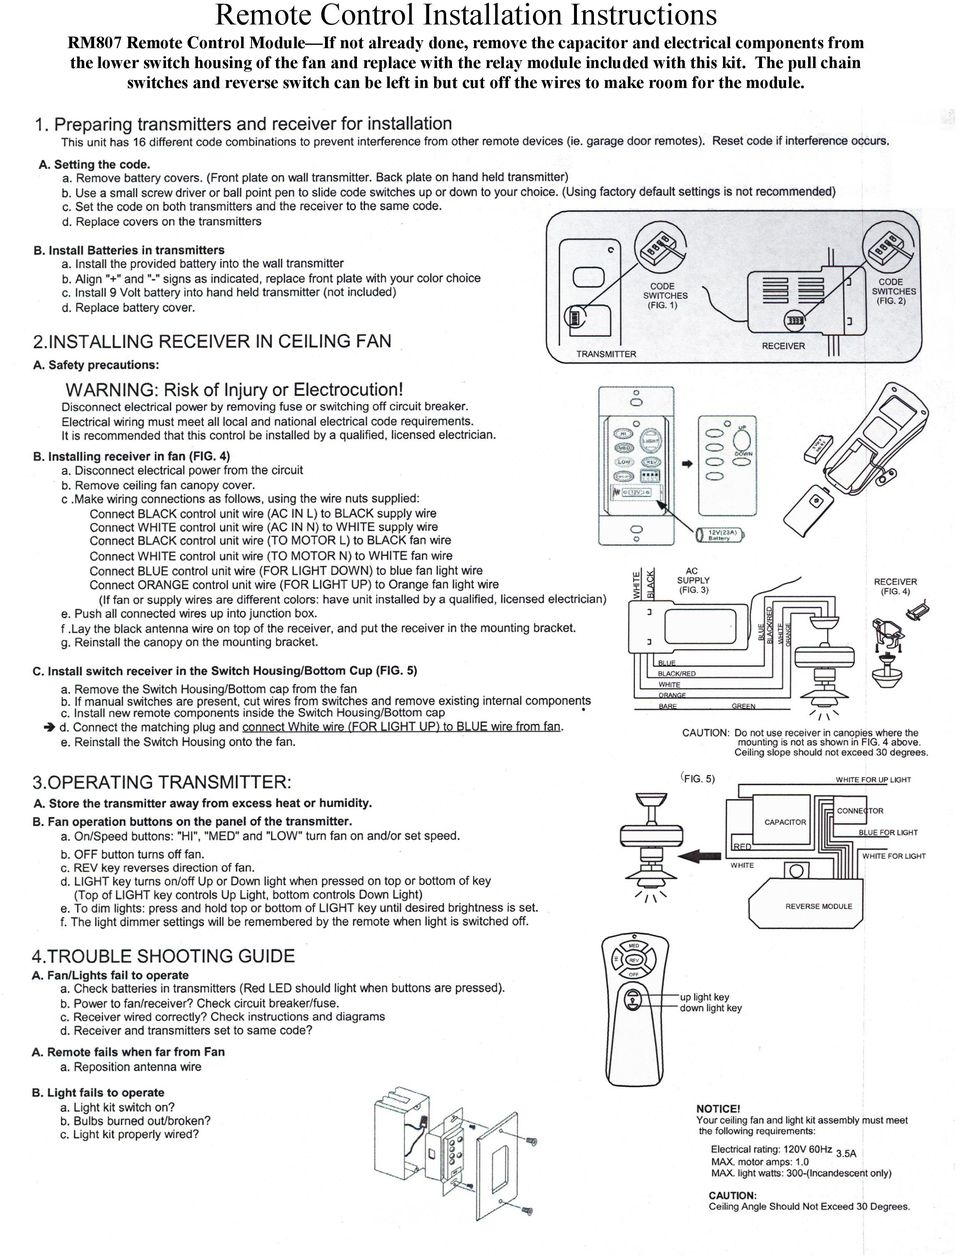 Owners Installation Manual For The Sheridan Mountainair Pine Set 3 Light Wire Schematic Fan And Replace With Relay Module Included This Kit